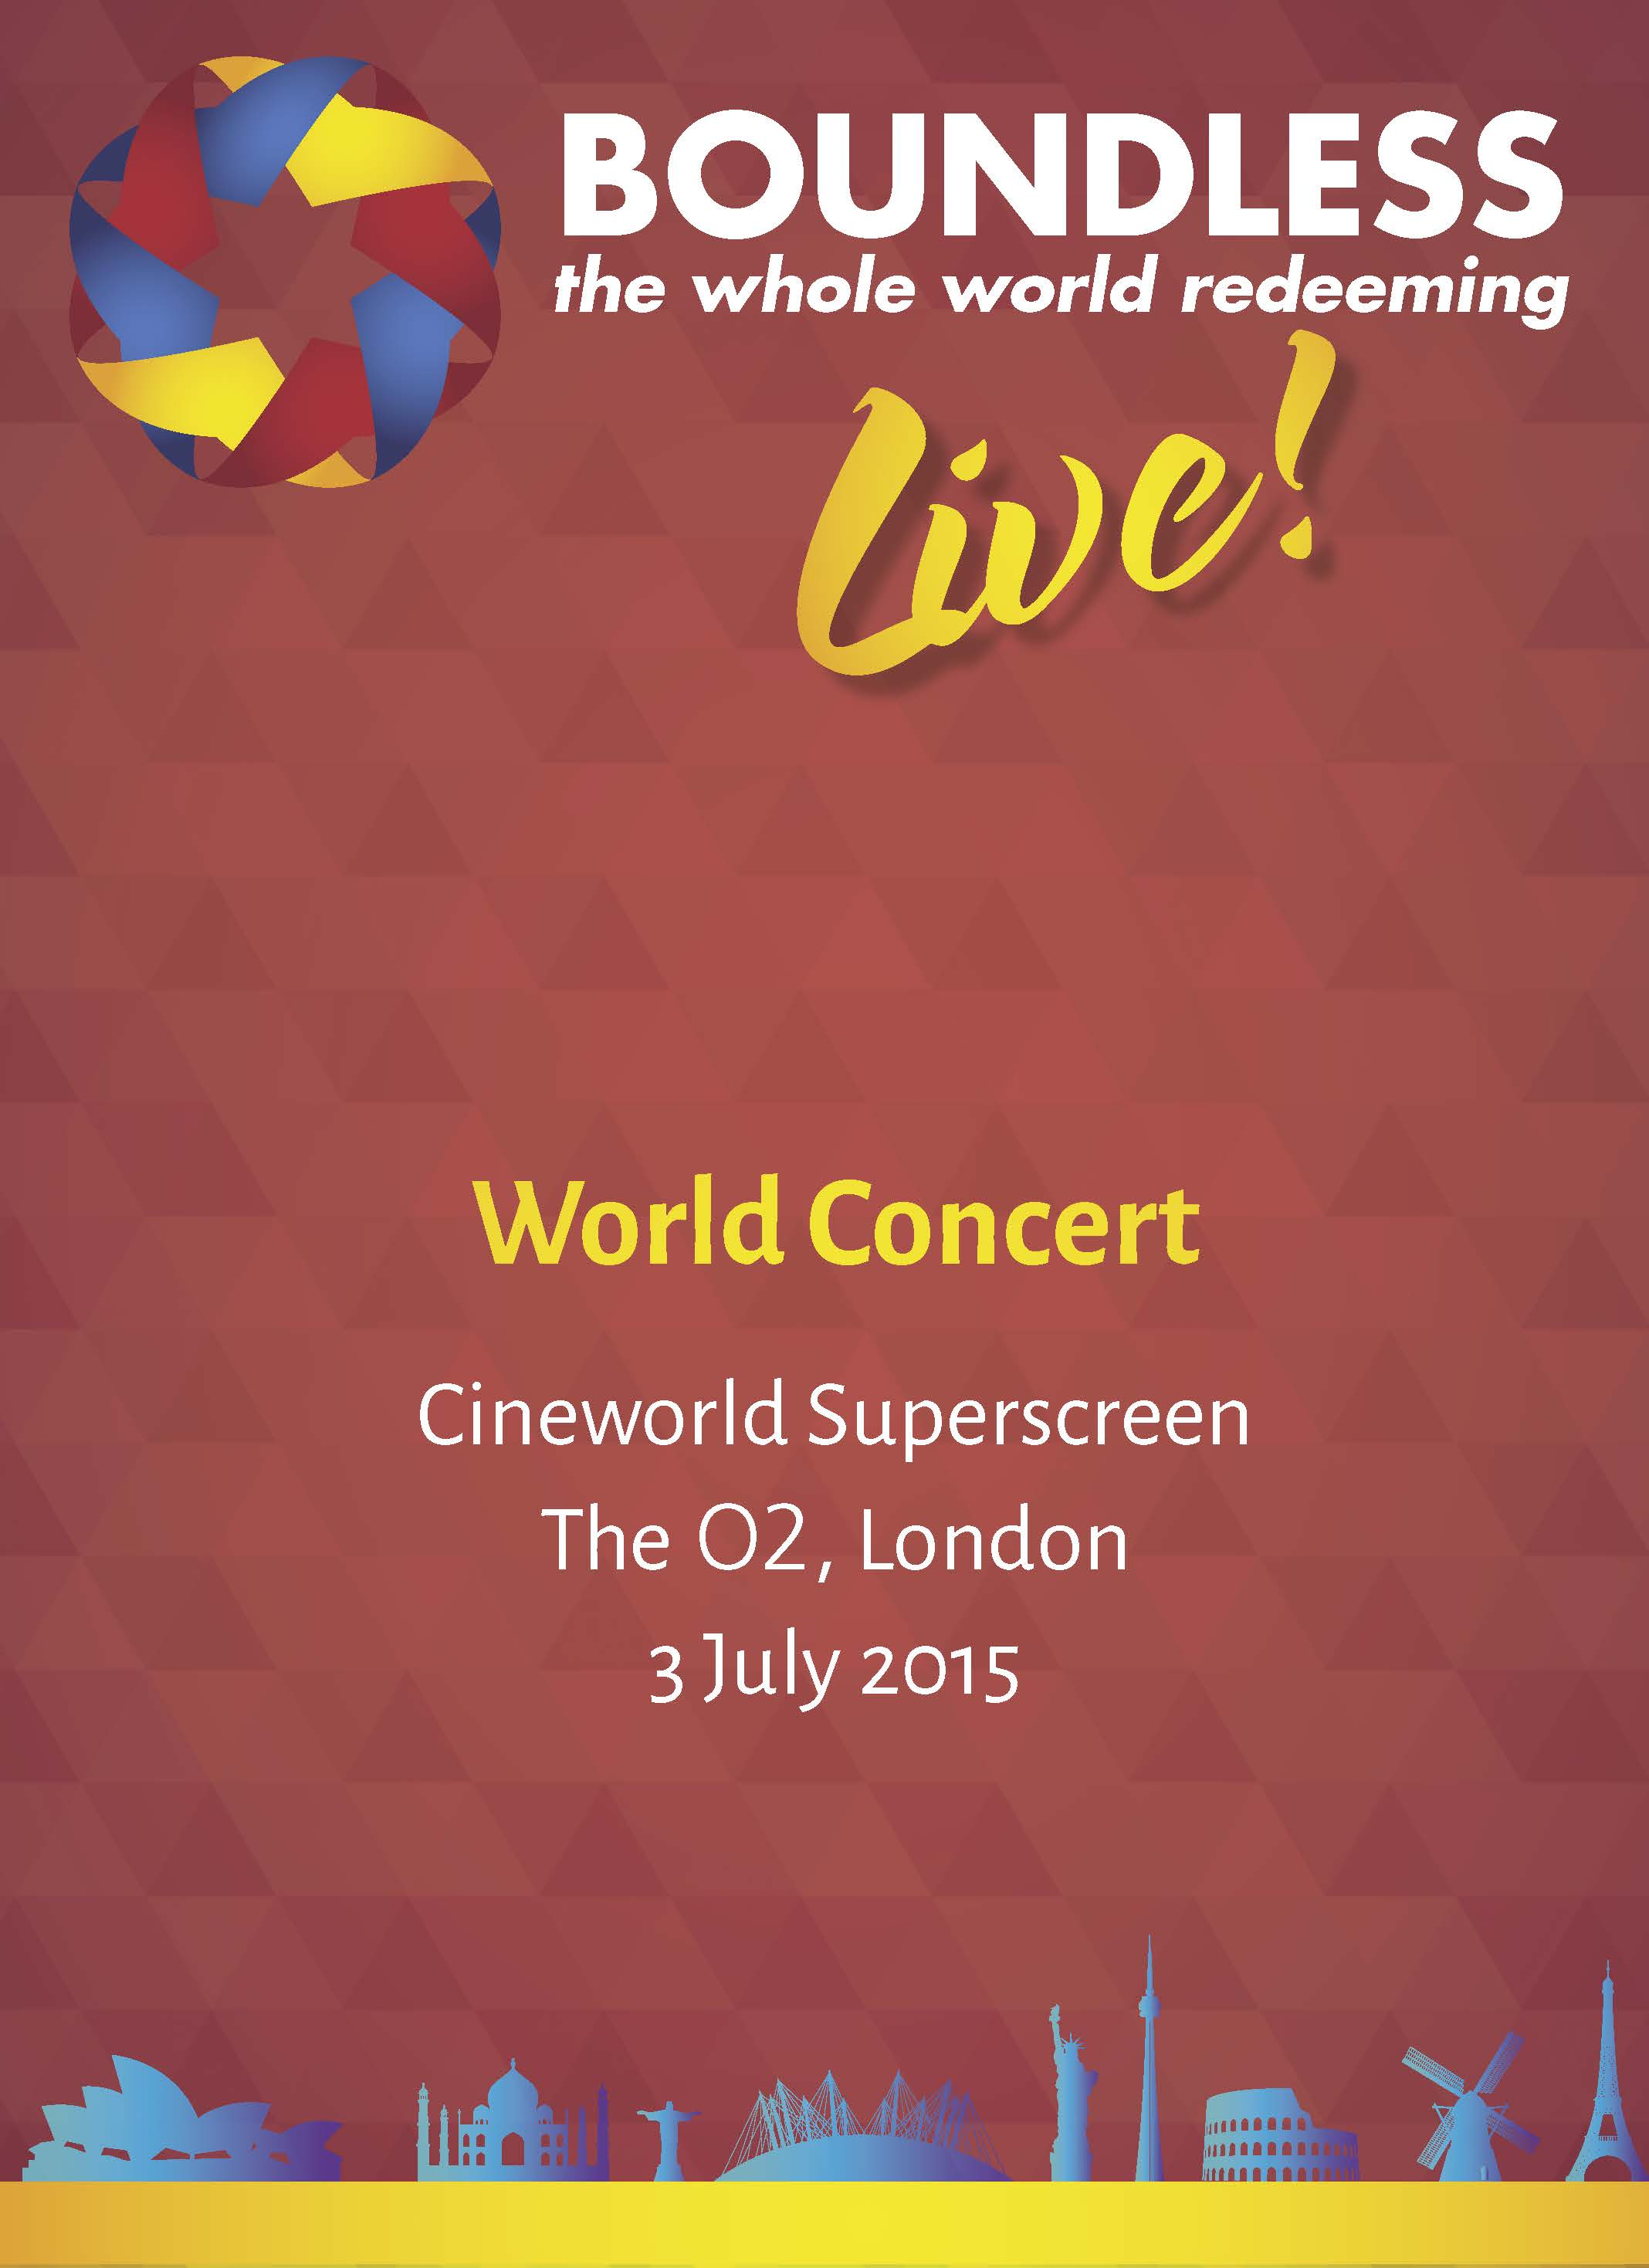 Boundless Live! Concert - World Concert